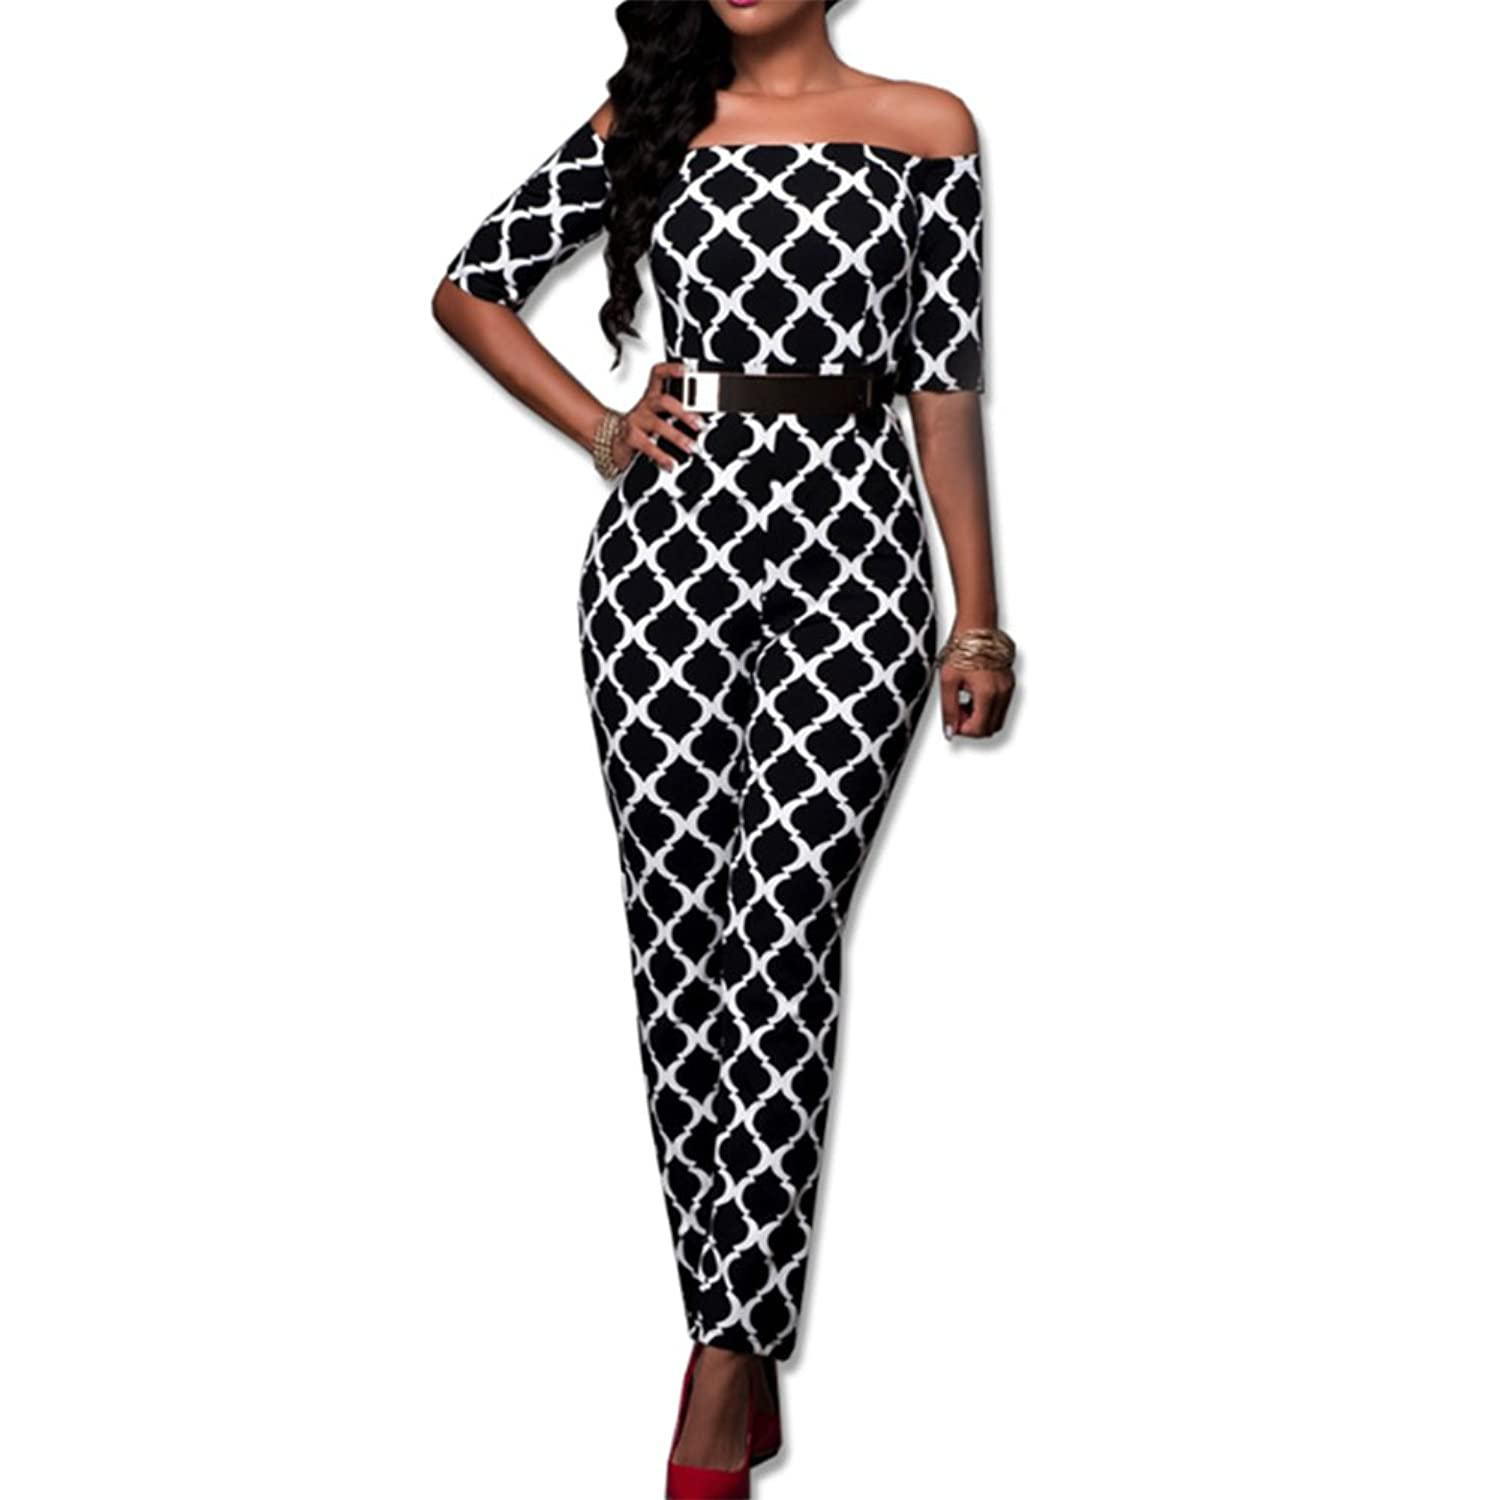 SUNTTON Women Half Sleeve Off Shoulder Plaid Playsuit Club Cocktail Jumpsuit Romper